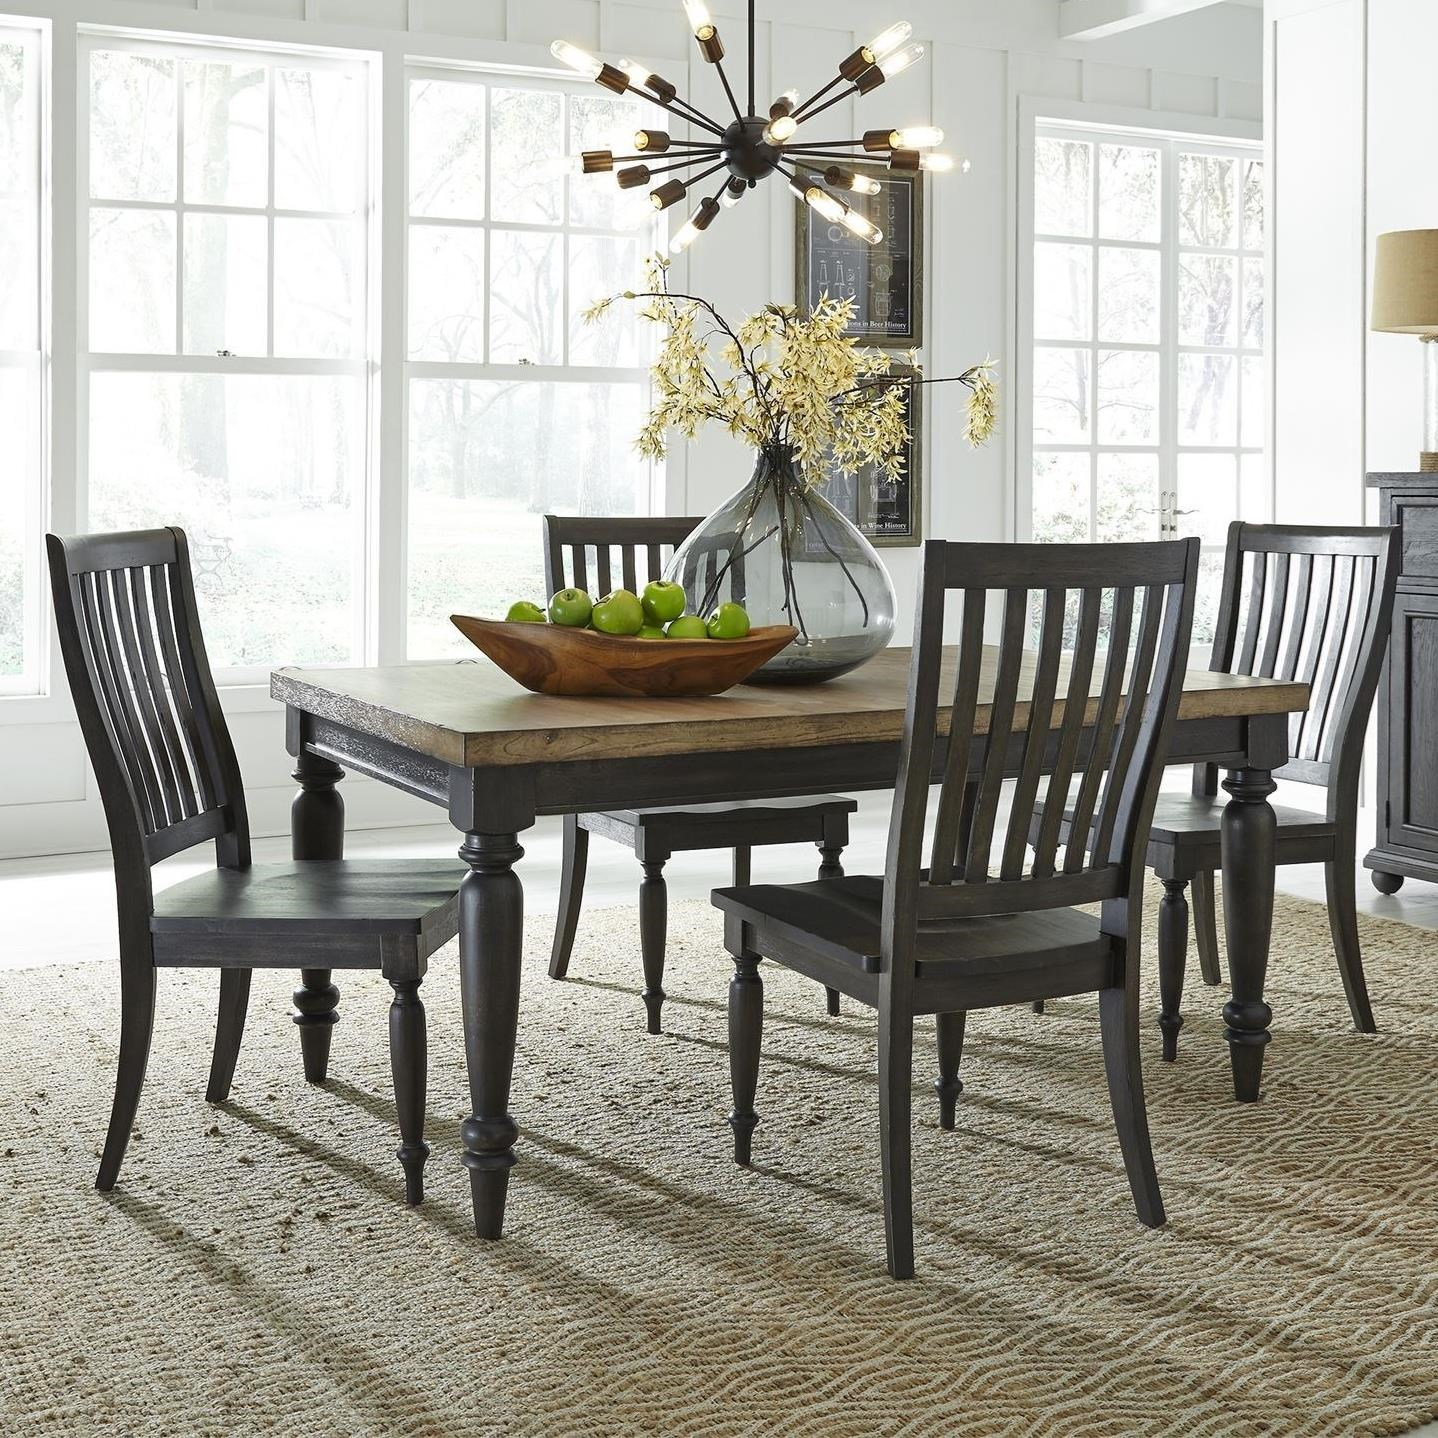 Harvest Home 5-Piece Rectangular Table Set by Liberty Furniture at Northeast Factory Direct